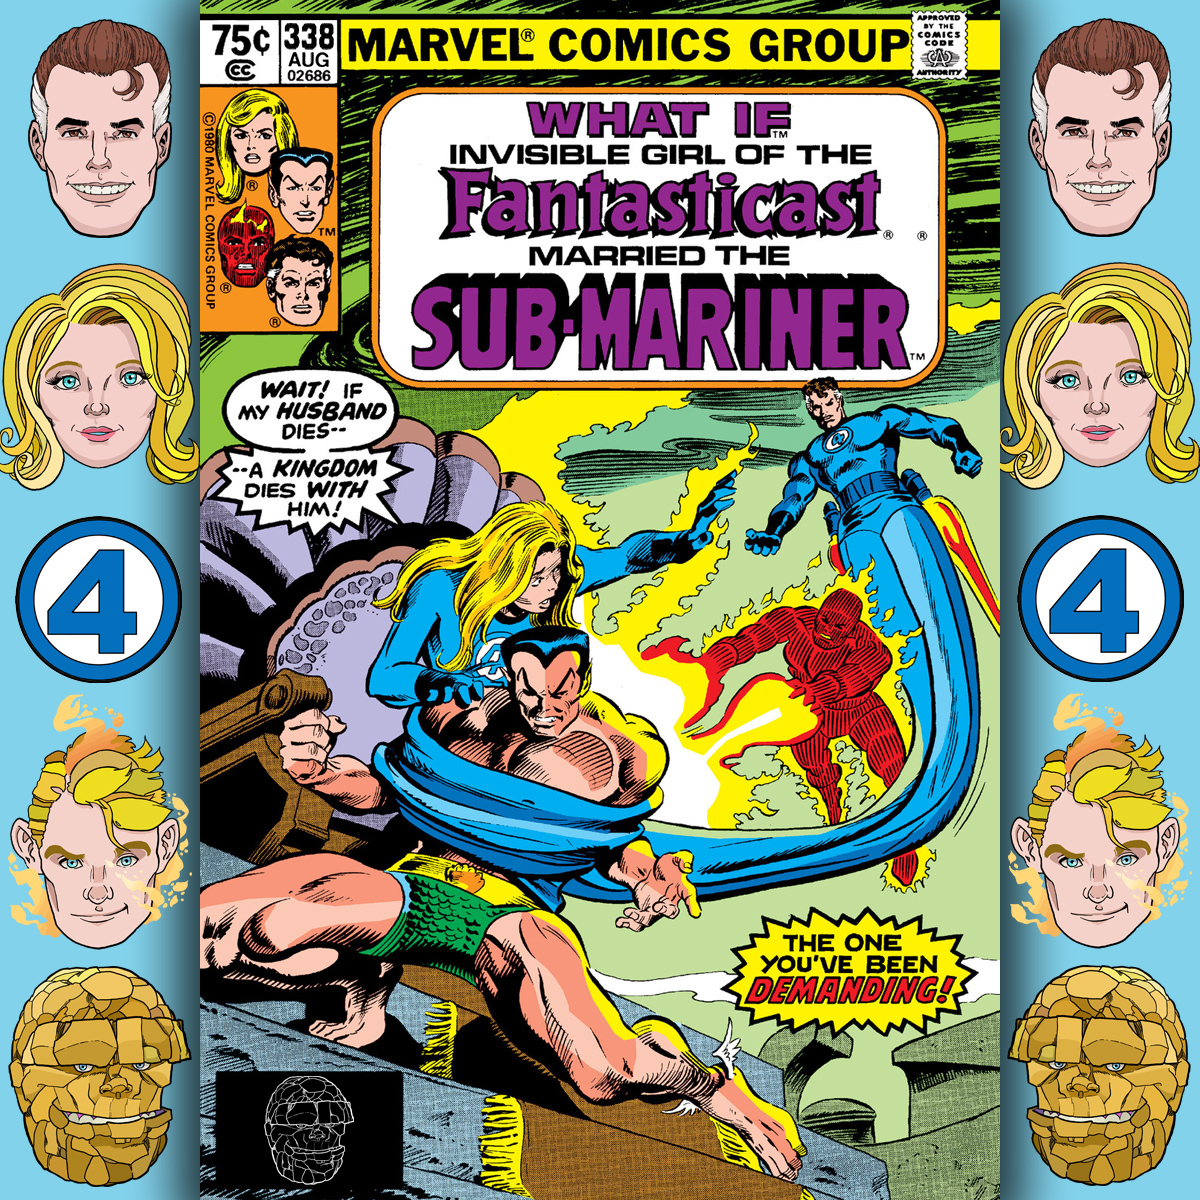 The Fantasticast Episode 338